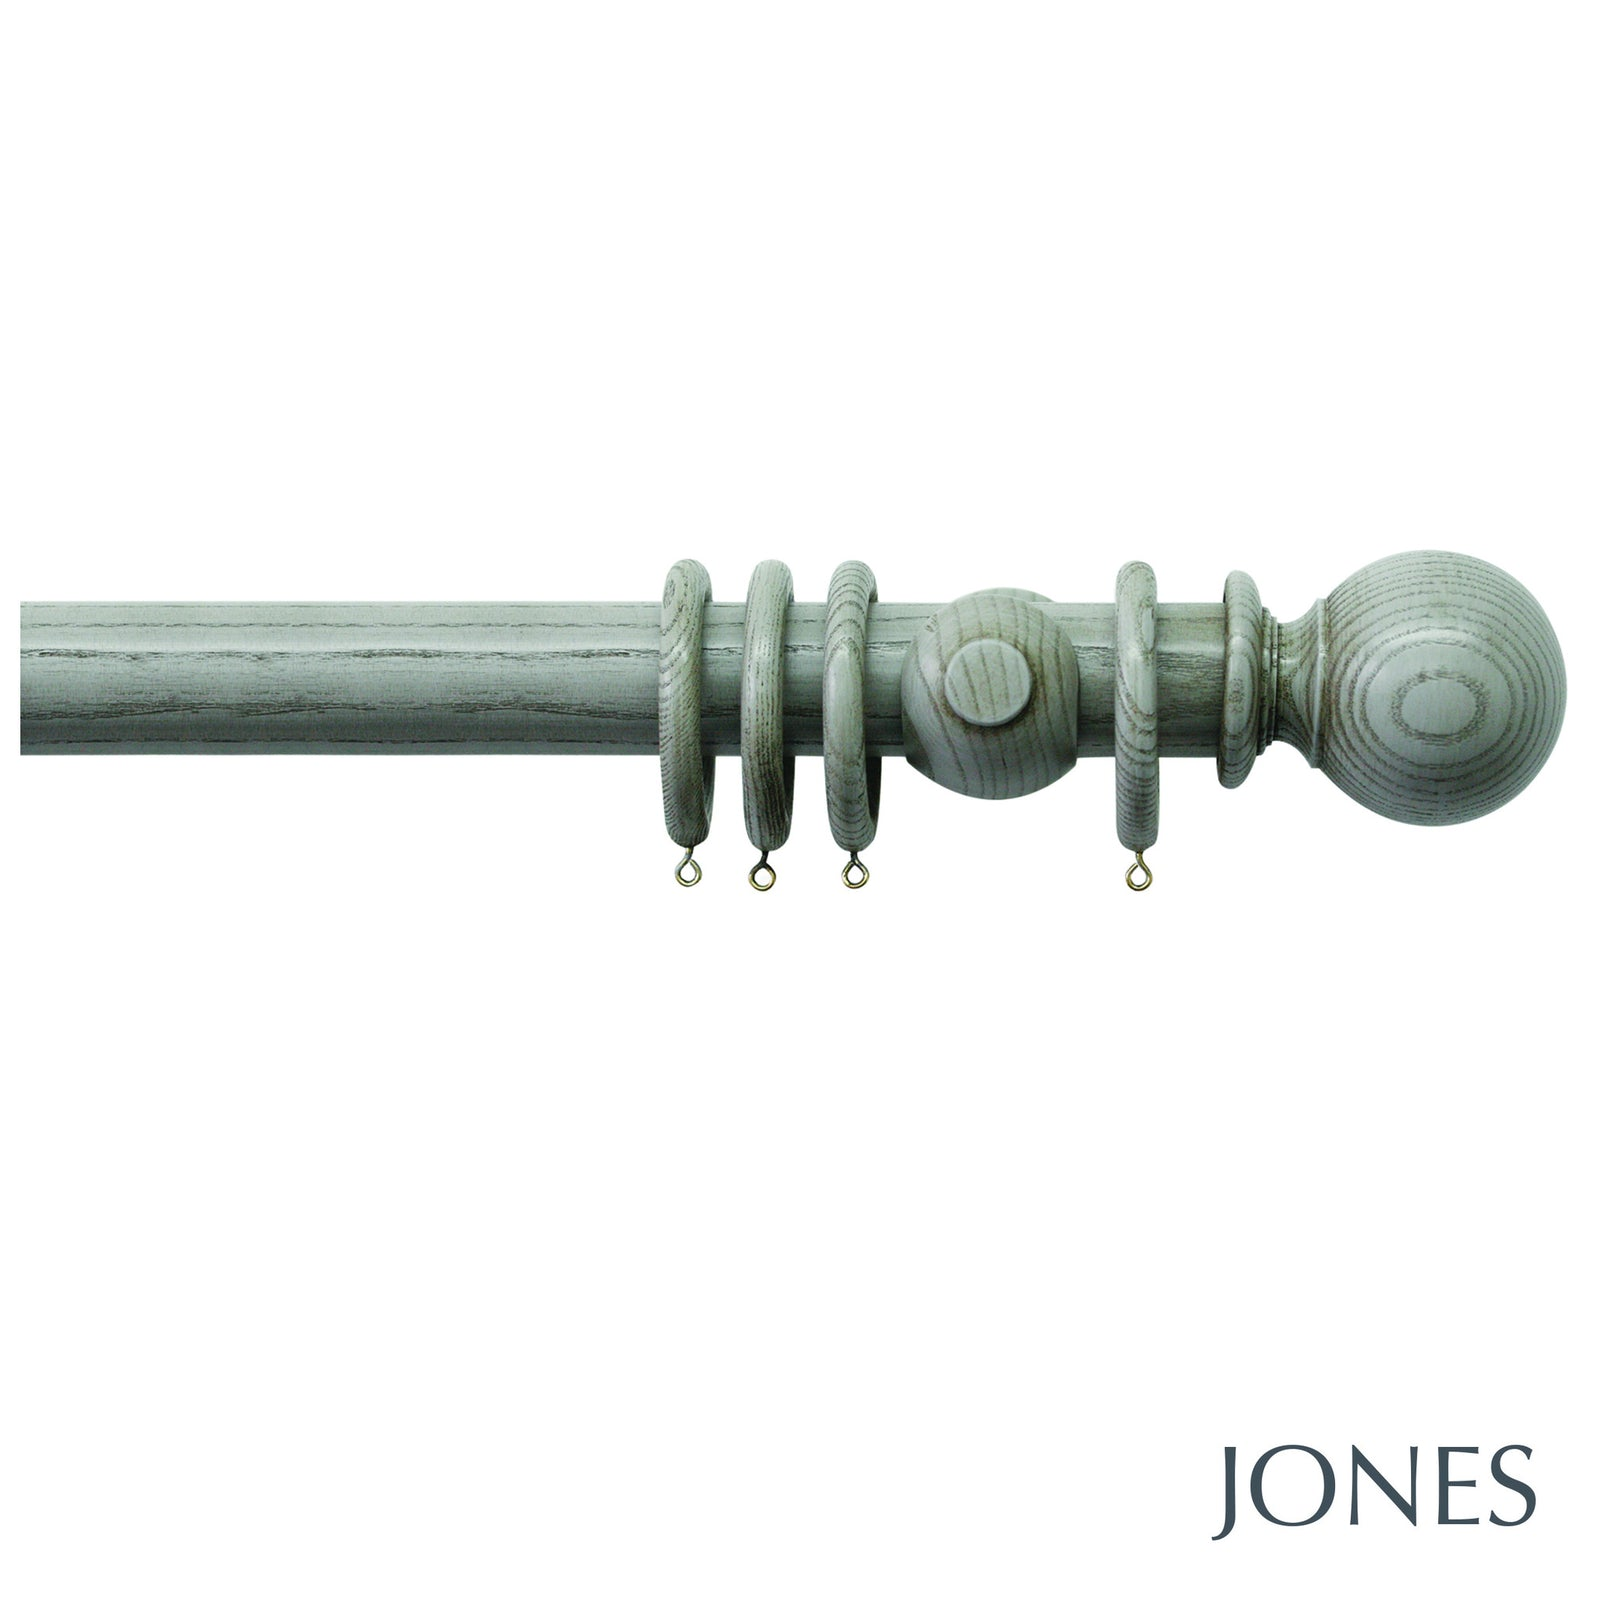 oakham poles - ball finials - Applemoon Interiors